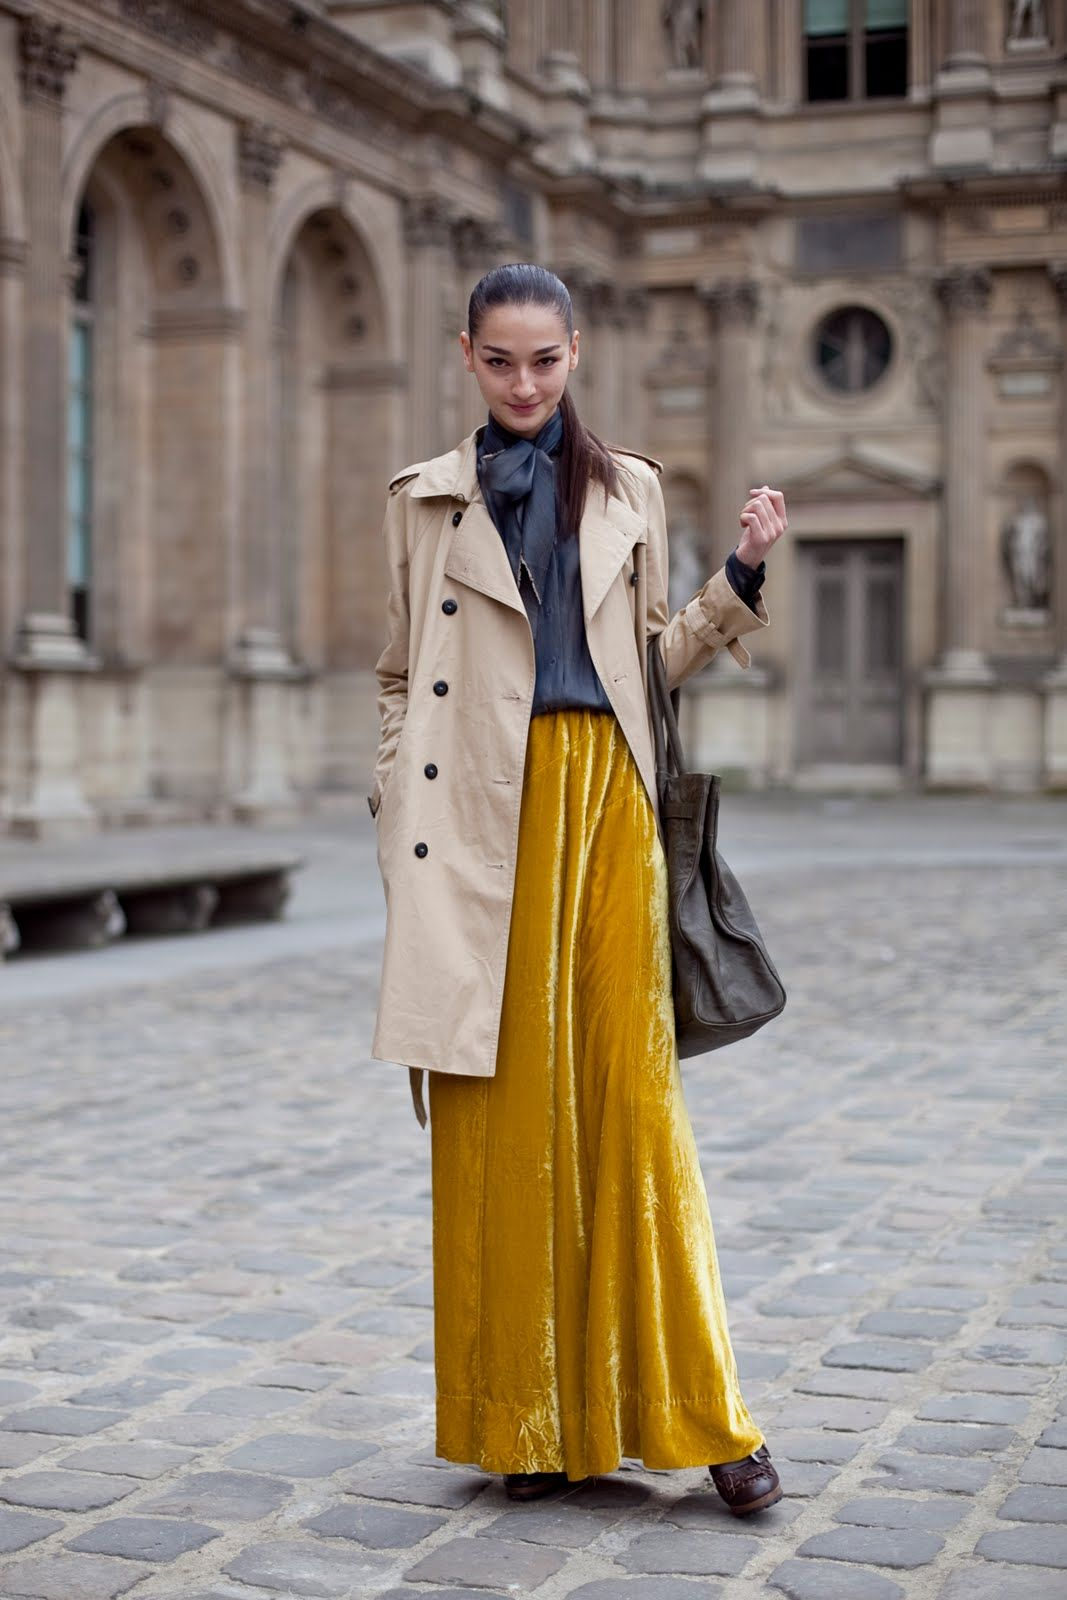 How to yellow wear skirt in winter recommend dress for on every day in 2019